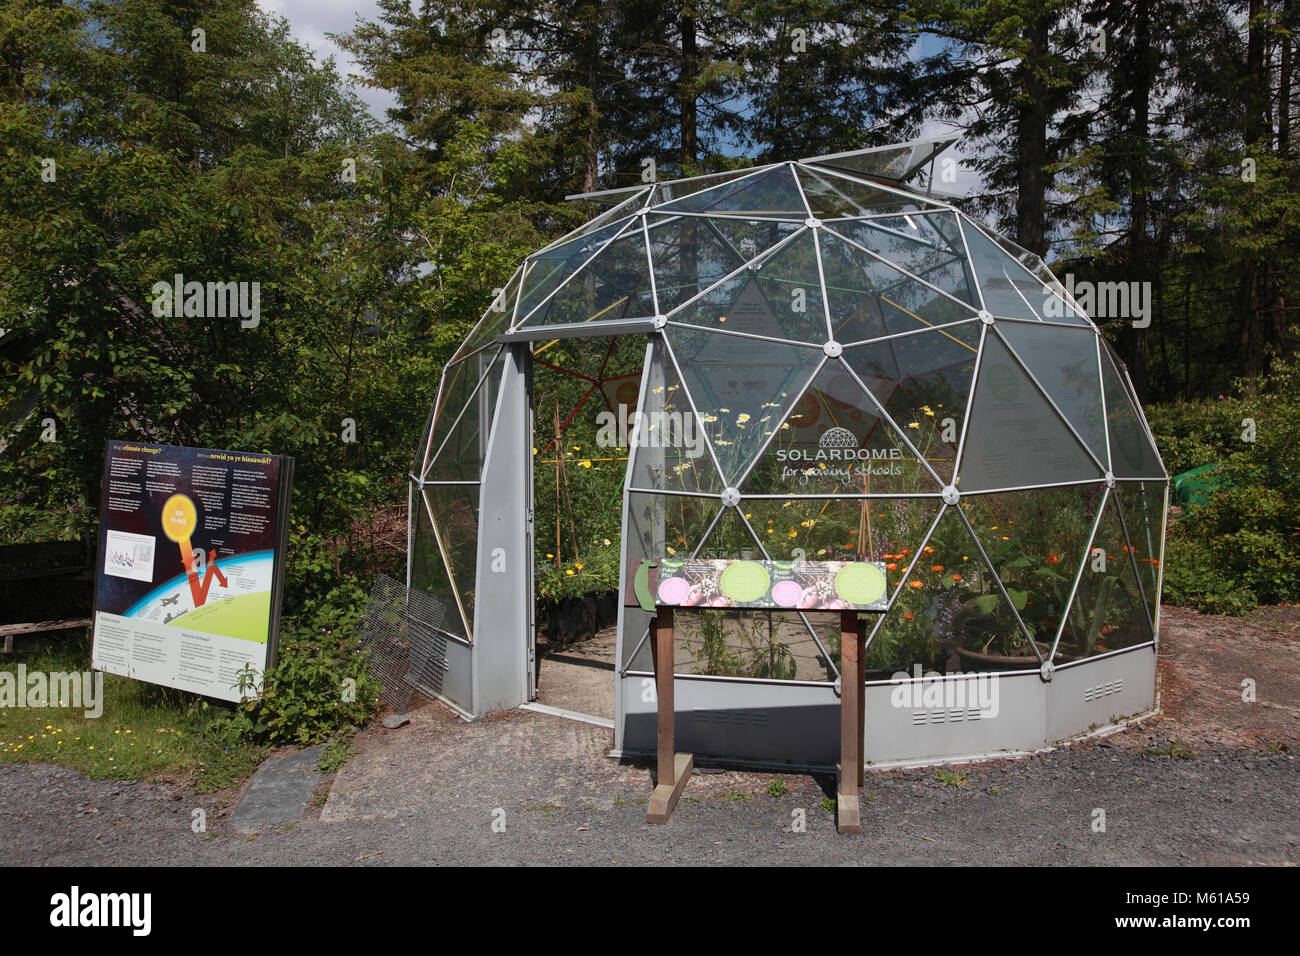 The geodesic dome solar dome at the Centre for Alternative Technology, Machynlleth - Stock Image